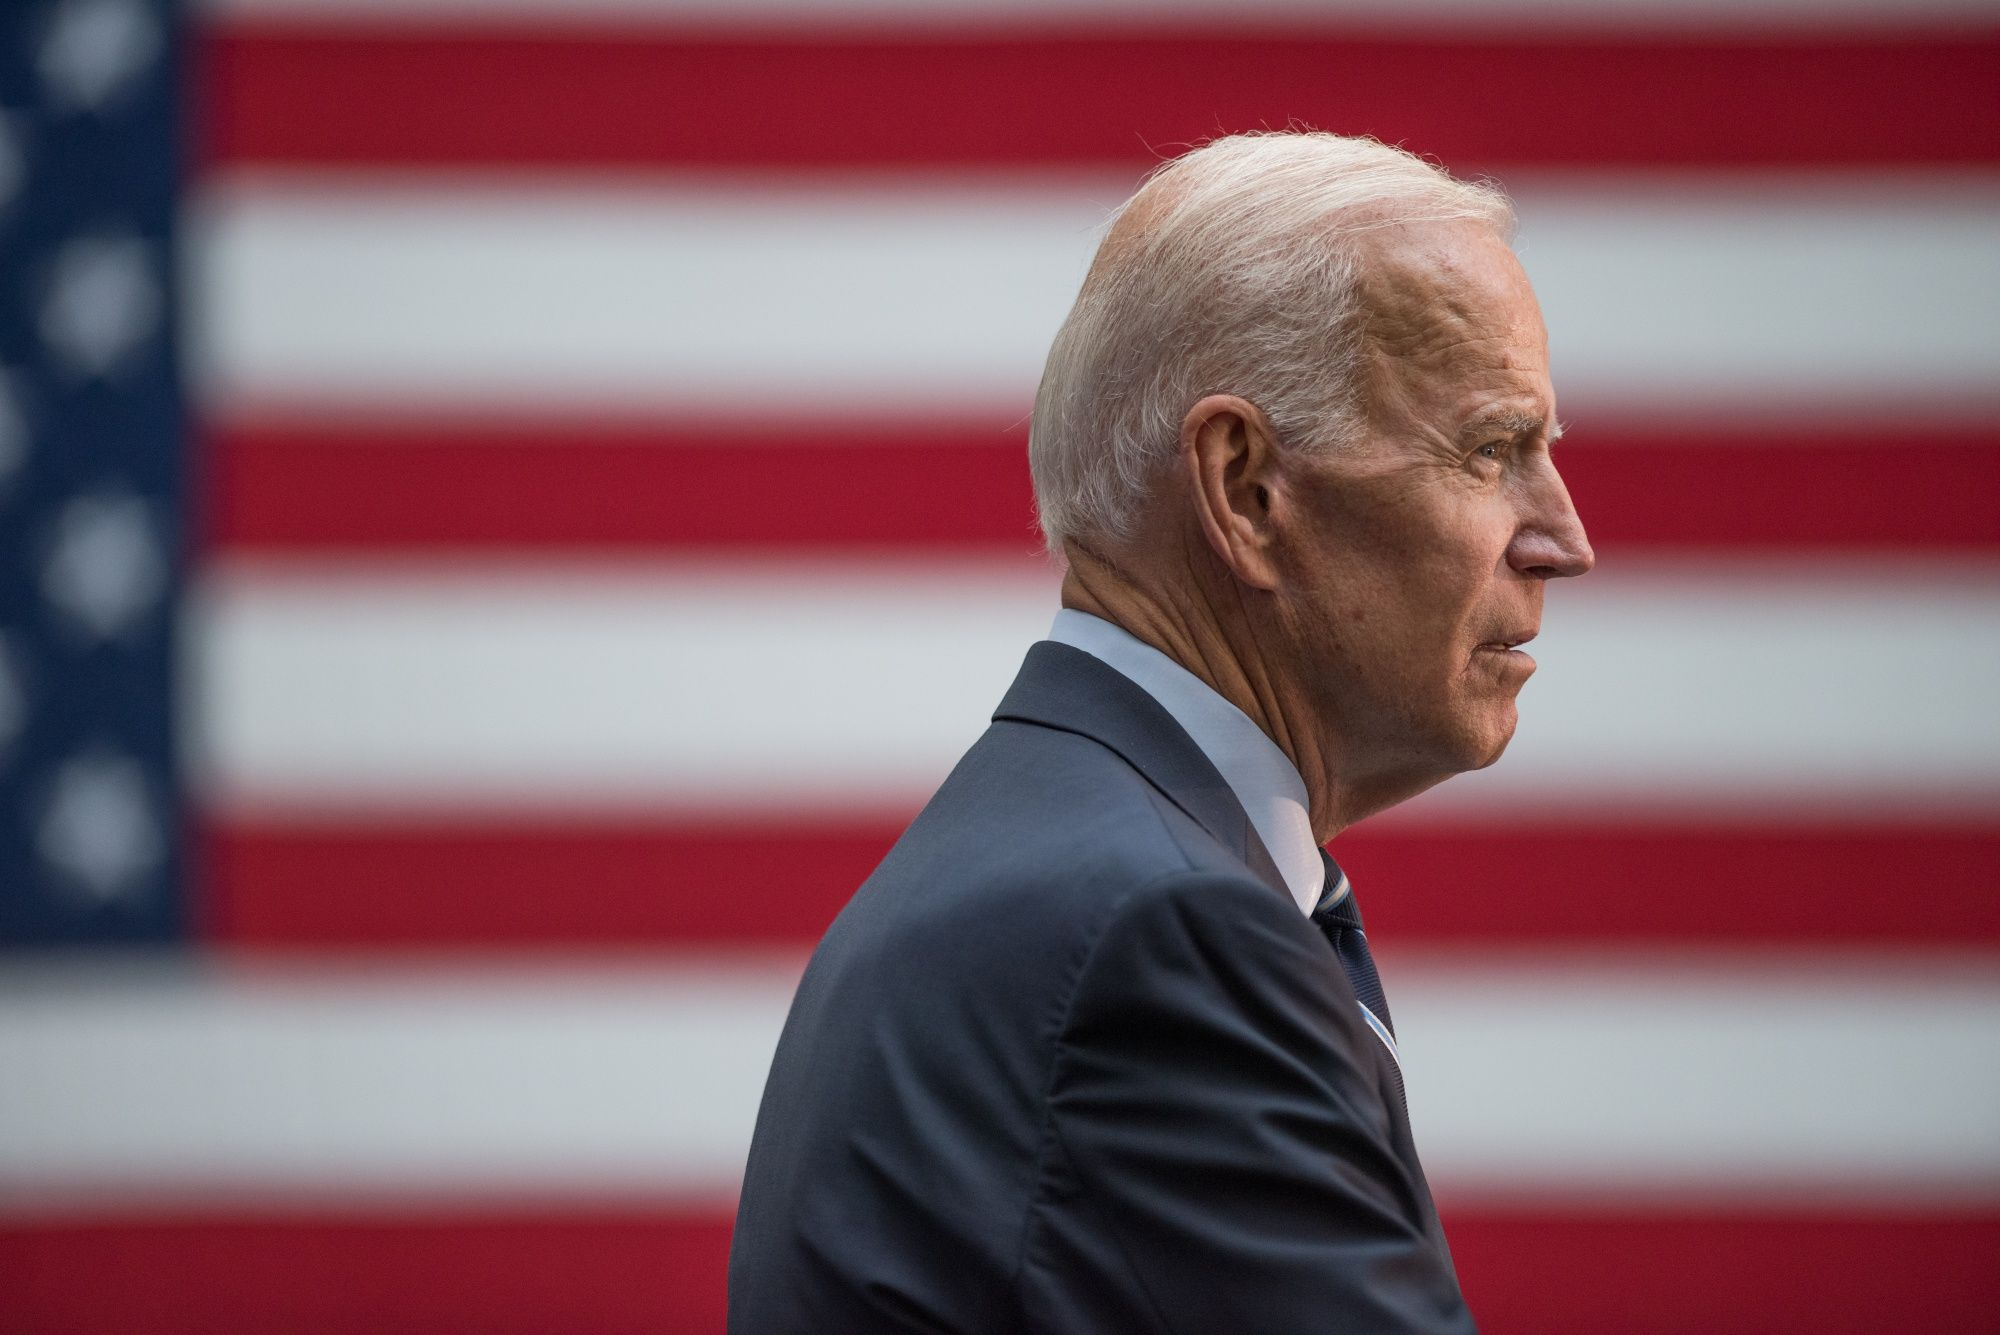 Biden Leads in CBS Democratic Poll but Faces Enthusiasm Gap